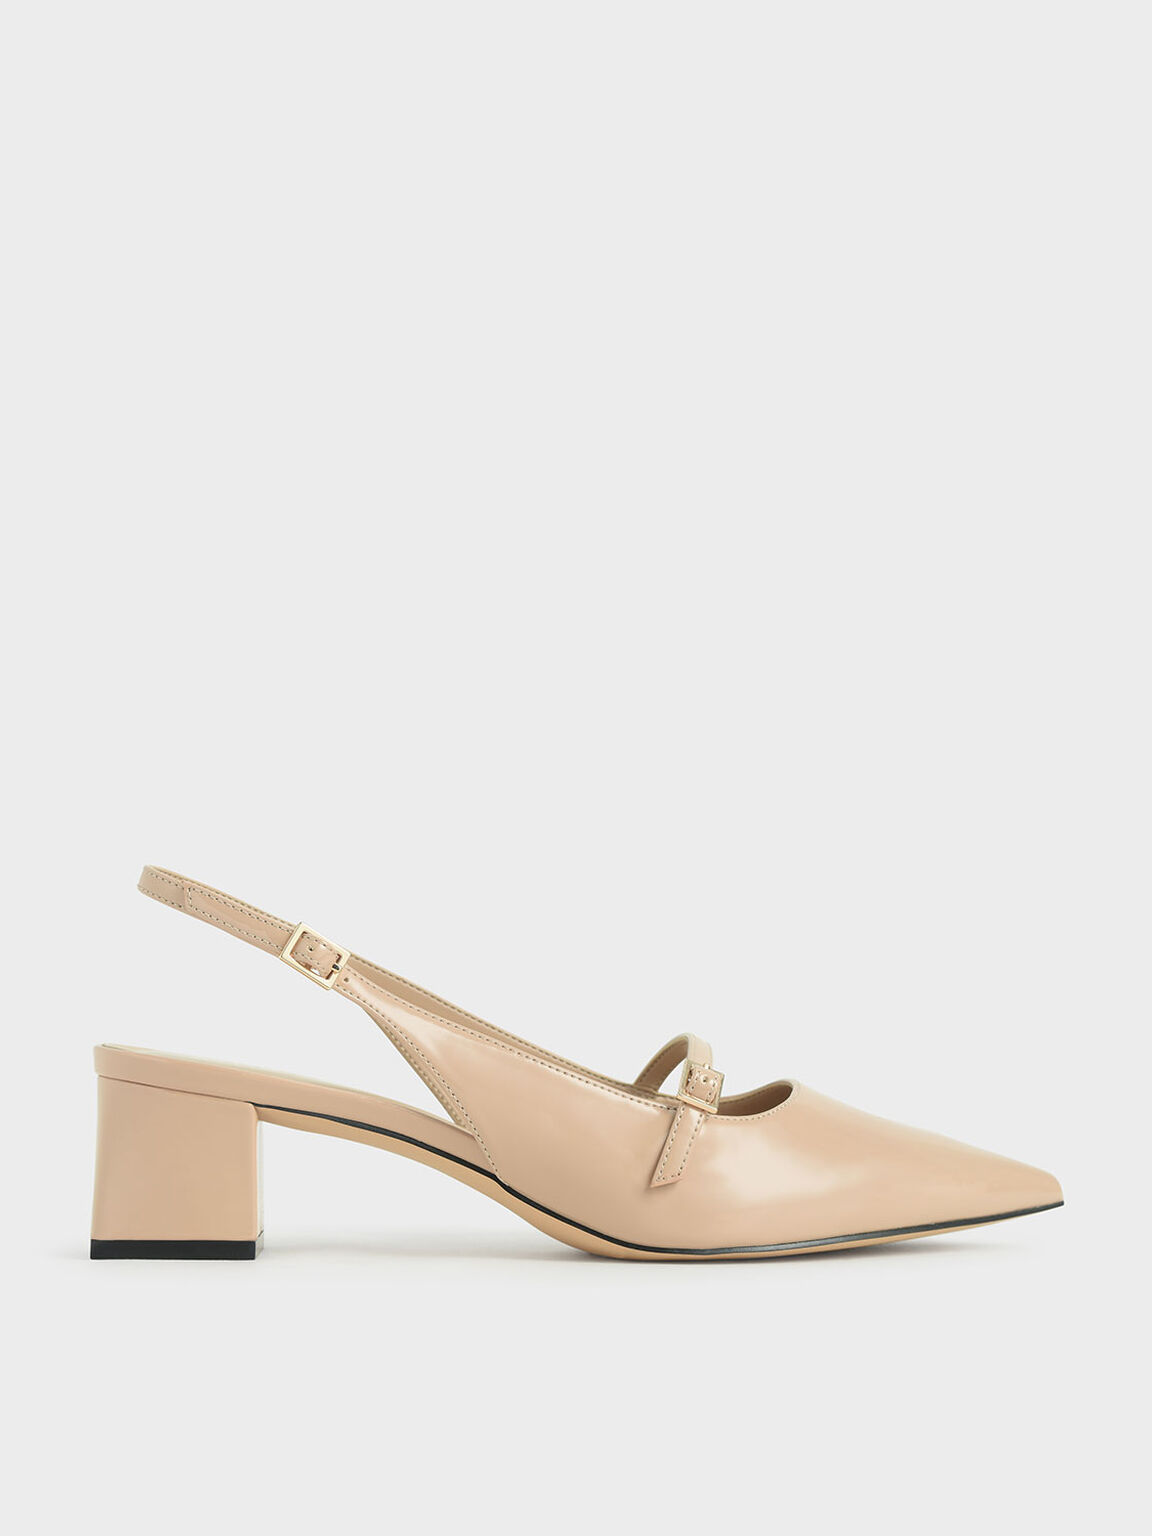 Patent Mary Jane Slingback Pumps, Nude, hi-res